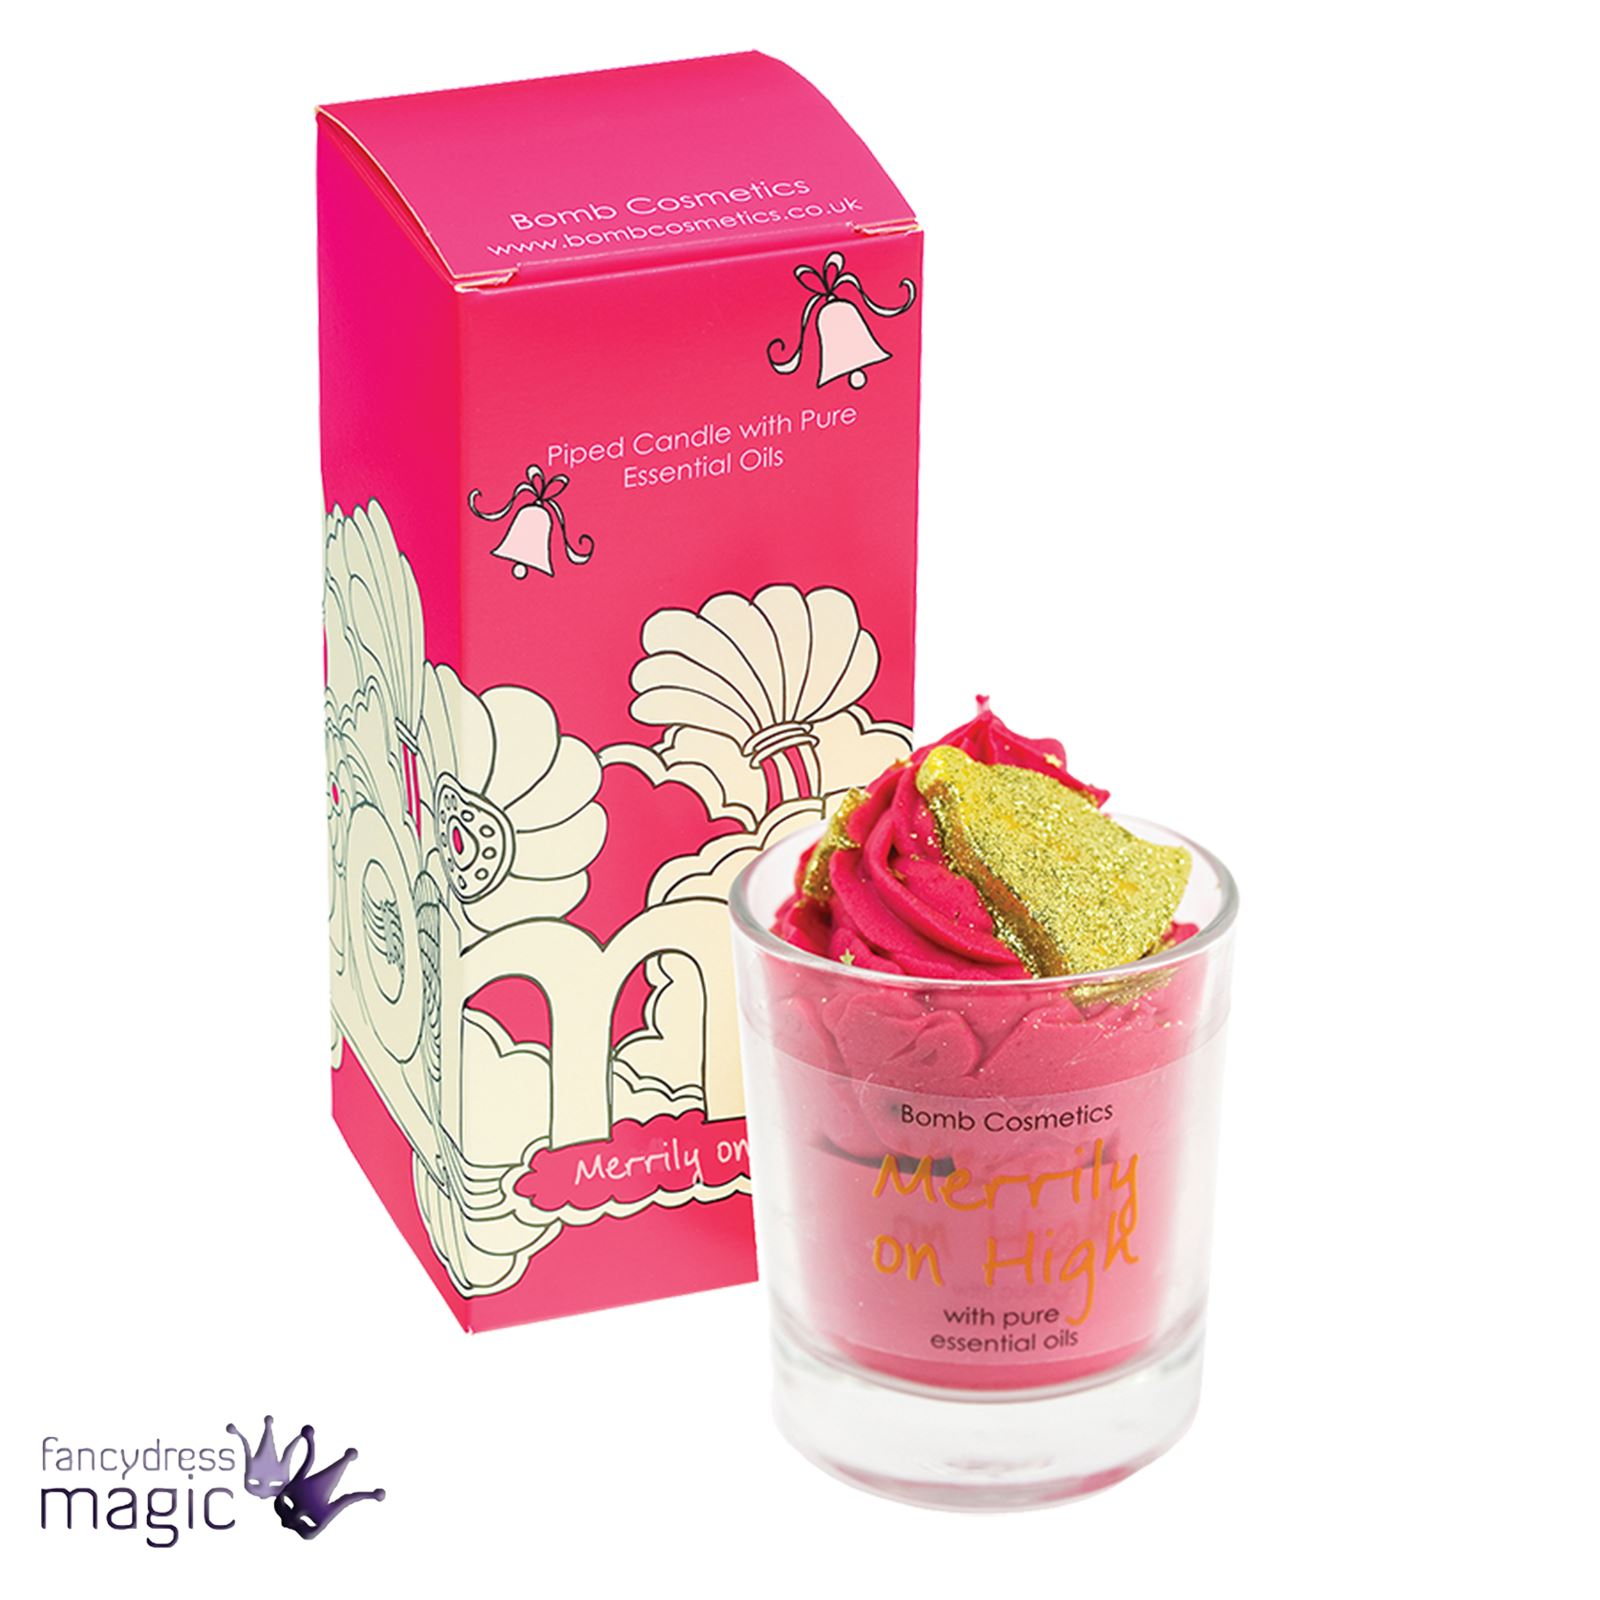 Bomb-Cosmetics-Handmade-Piped-Glass-Candle-Vegan-Pure-Essential-Oils-Boxed-Gift thumbnail 20